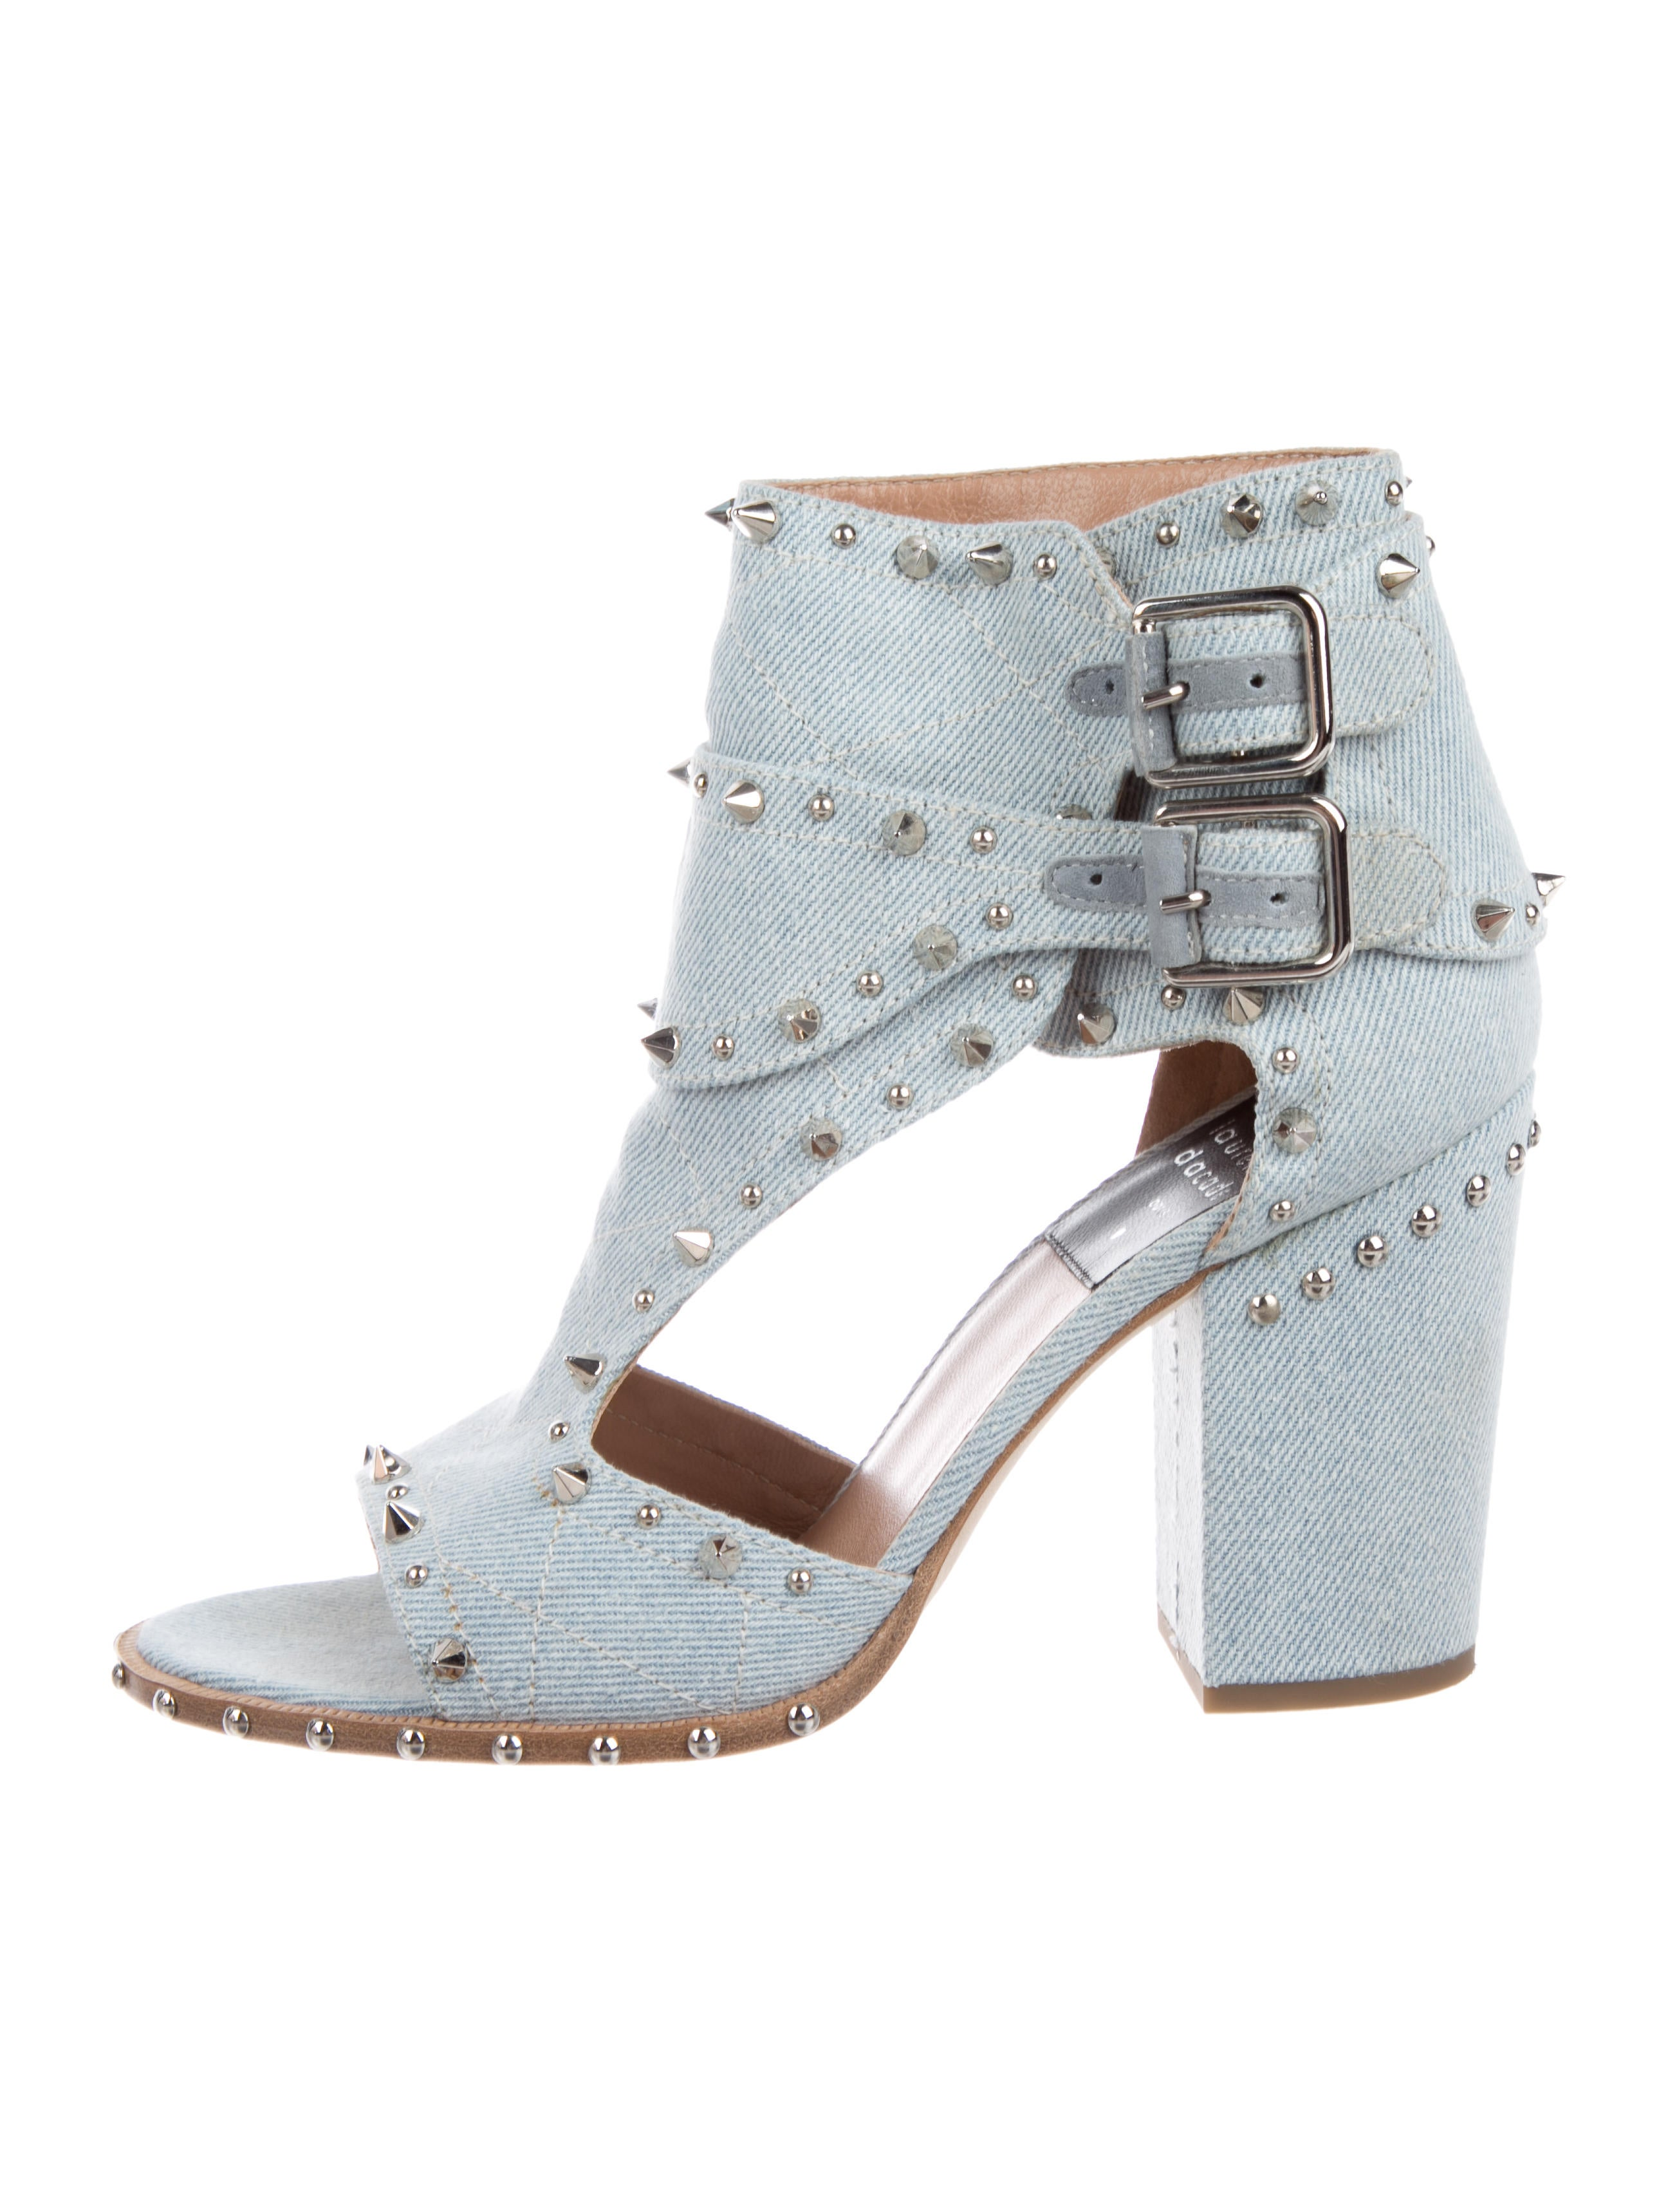 Laurence Dacade Derik Denim Sandals prices cheap price free shipping sast cheap sale browse amazon cheap price outlet store Locations TcnXJ0ngt